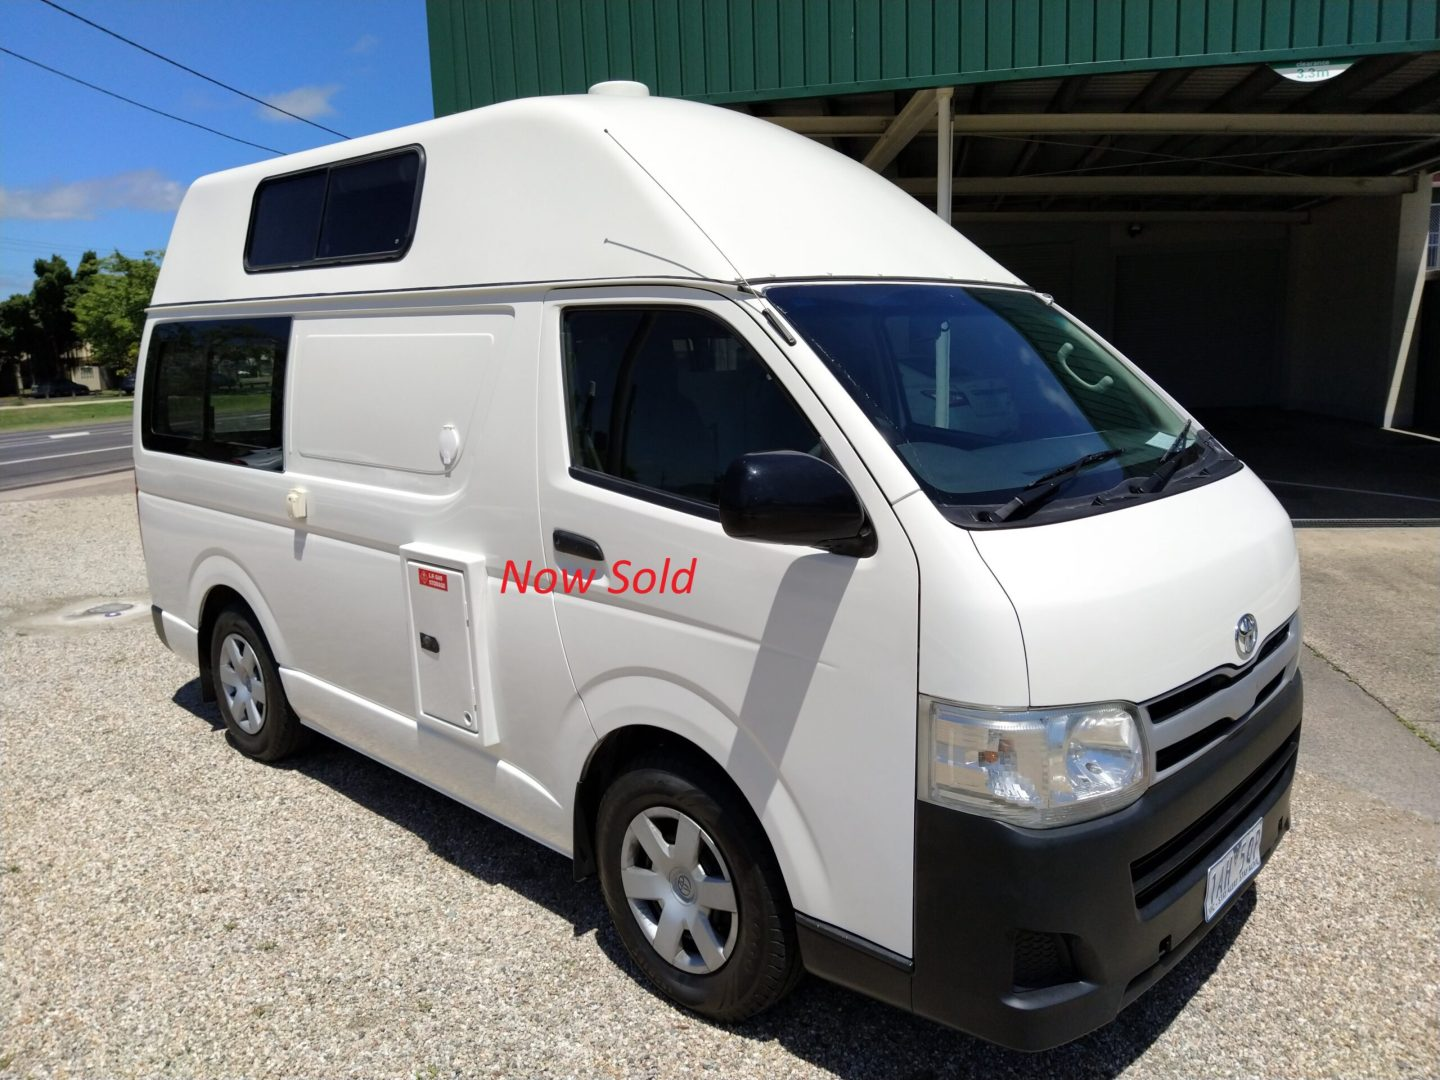 2013 Kea HiTop Toyota T490 2 Berth now SOLD